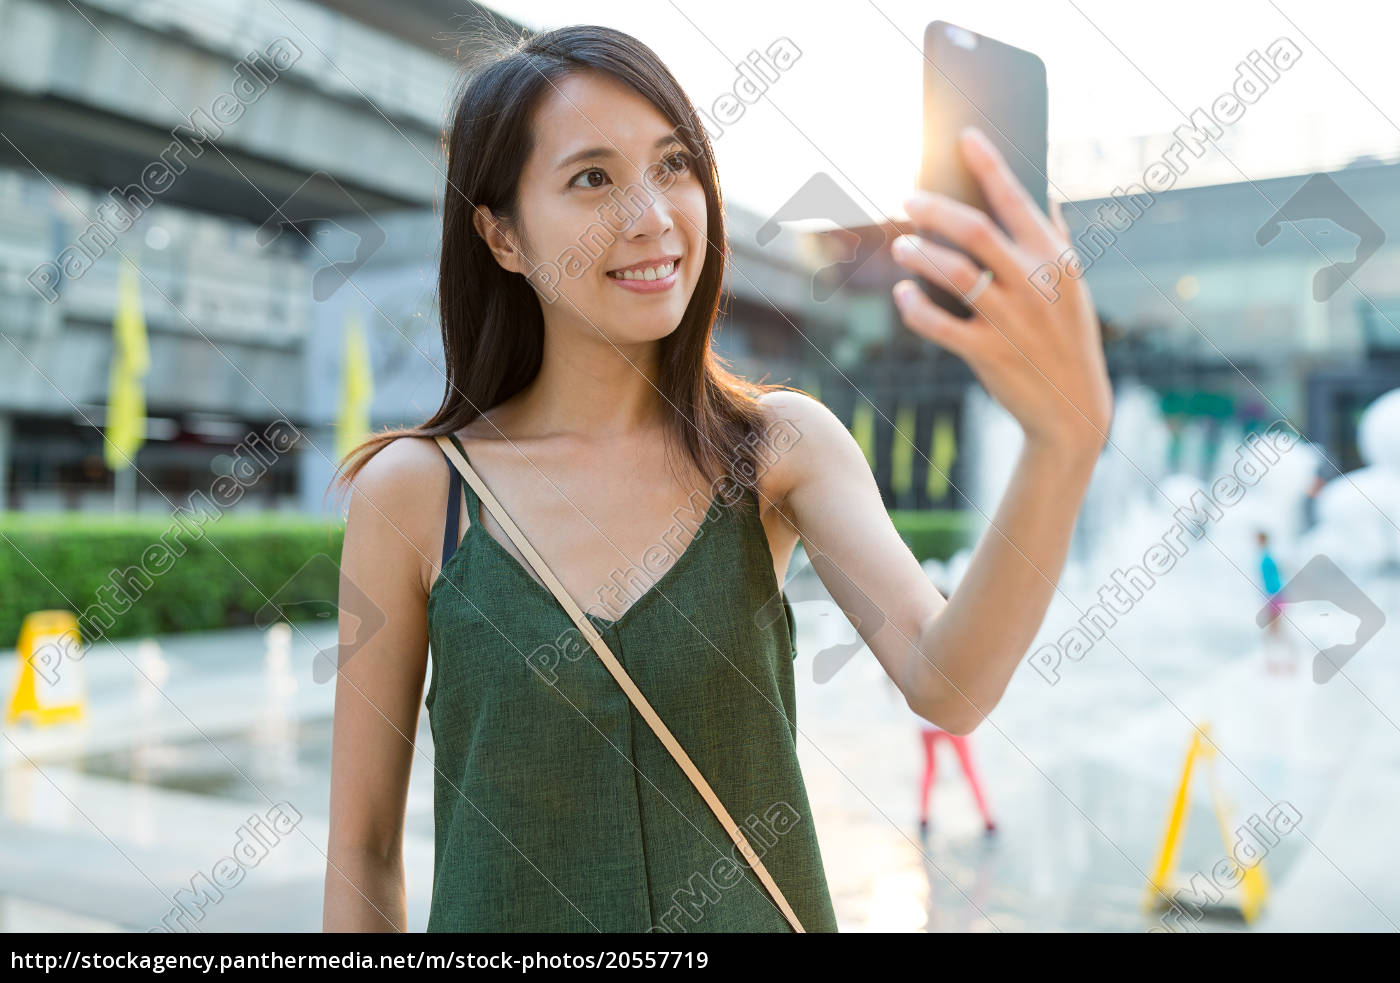 woman, taking, selfie, by, mobile, phone - 20557719